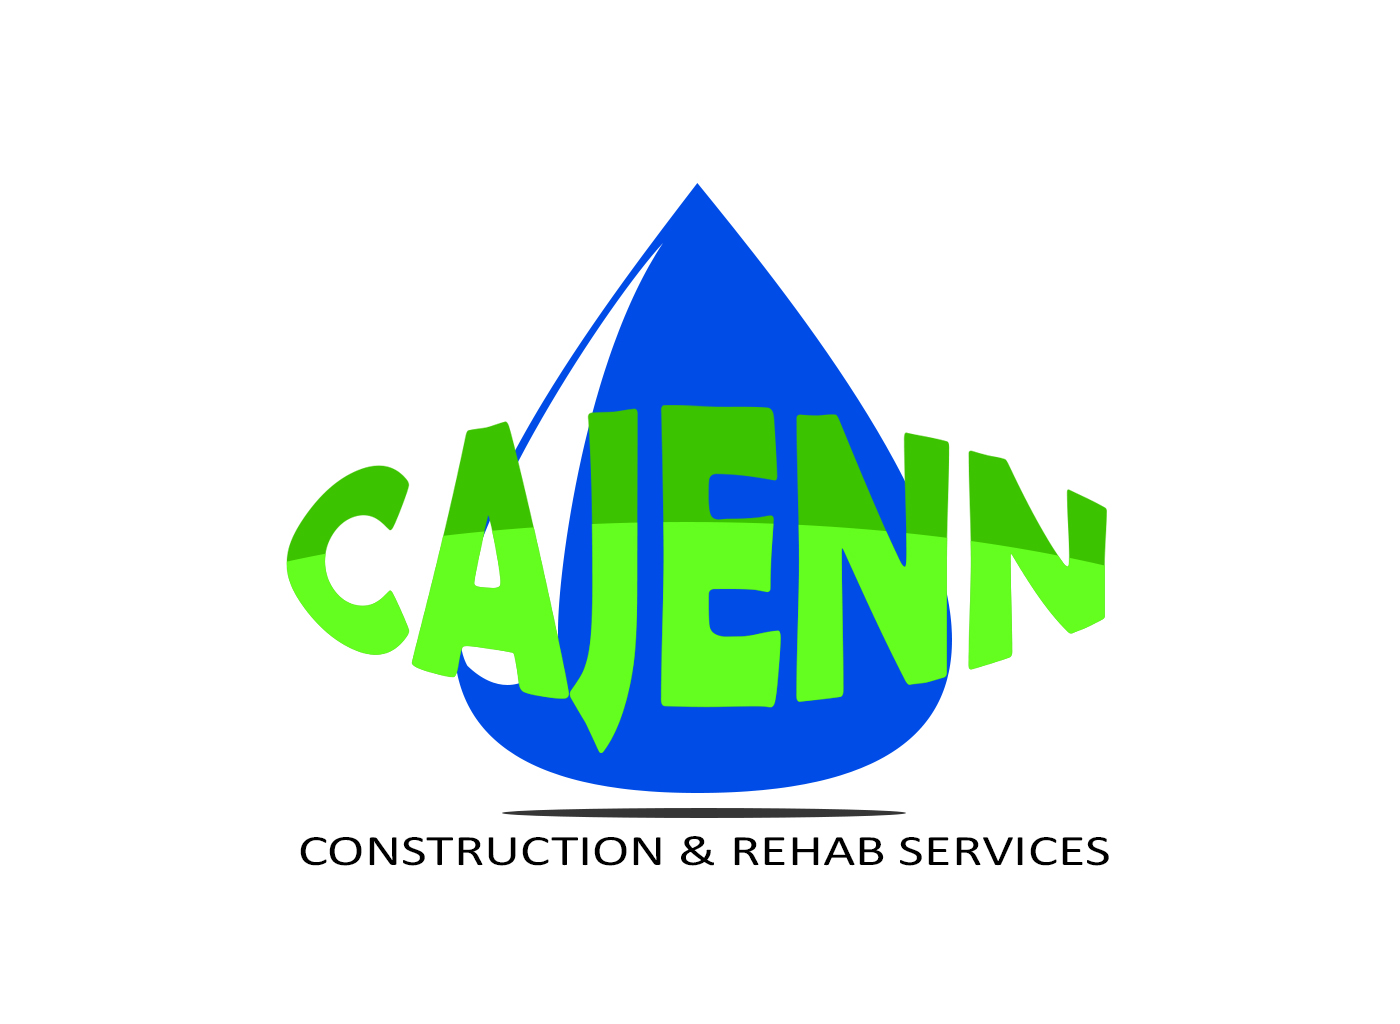 Logo Design by drunkman - Entry No. 240 in the Logo Design Contest New Logo Design for CaJenn Construction & Rehab Services.